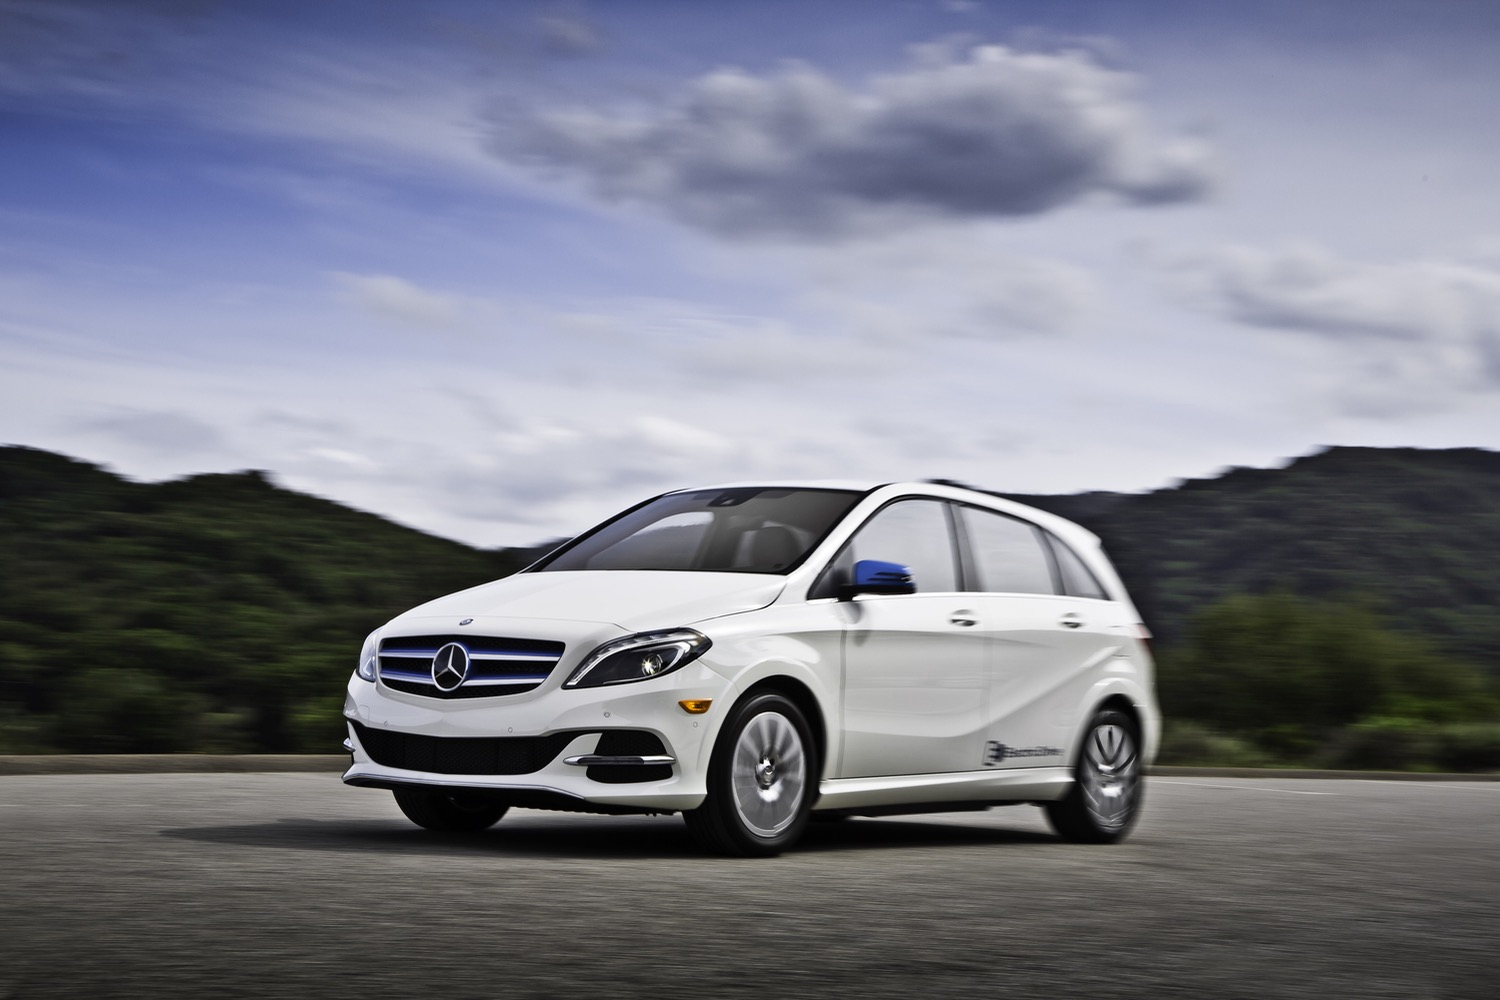 mercedes benz b class electric drive gets the ax ahead of electric car reboot. Black Bedroom Furniture Sets. Home Design Ideas